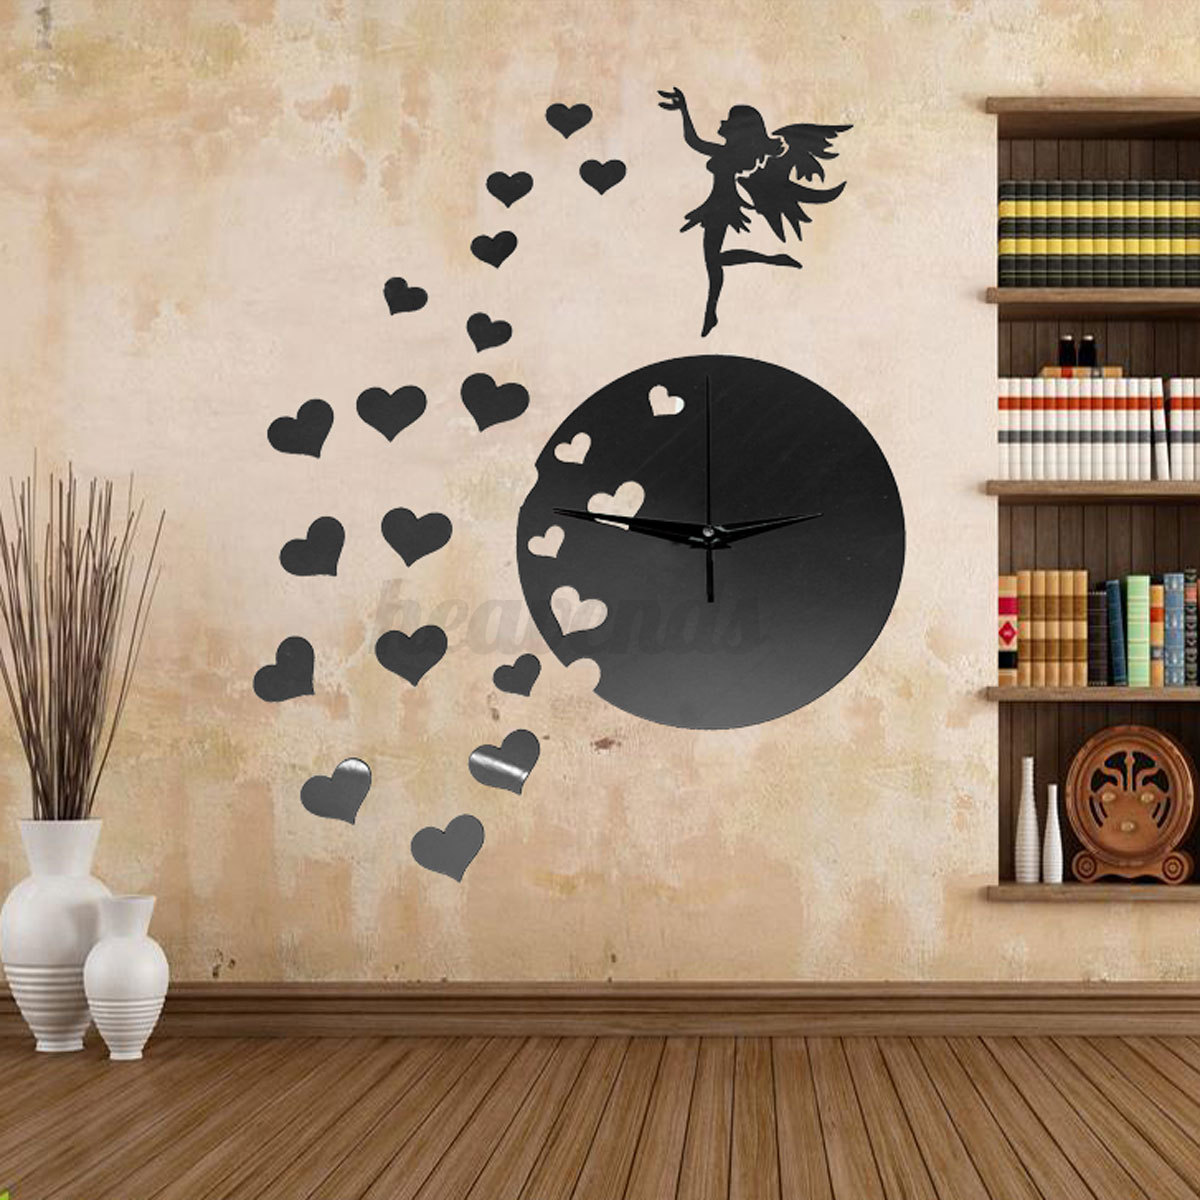 Diy 3d horloge murale moderne design miroir maison art for Miroir moderne decoration